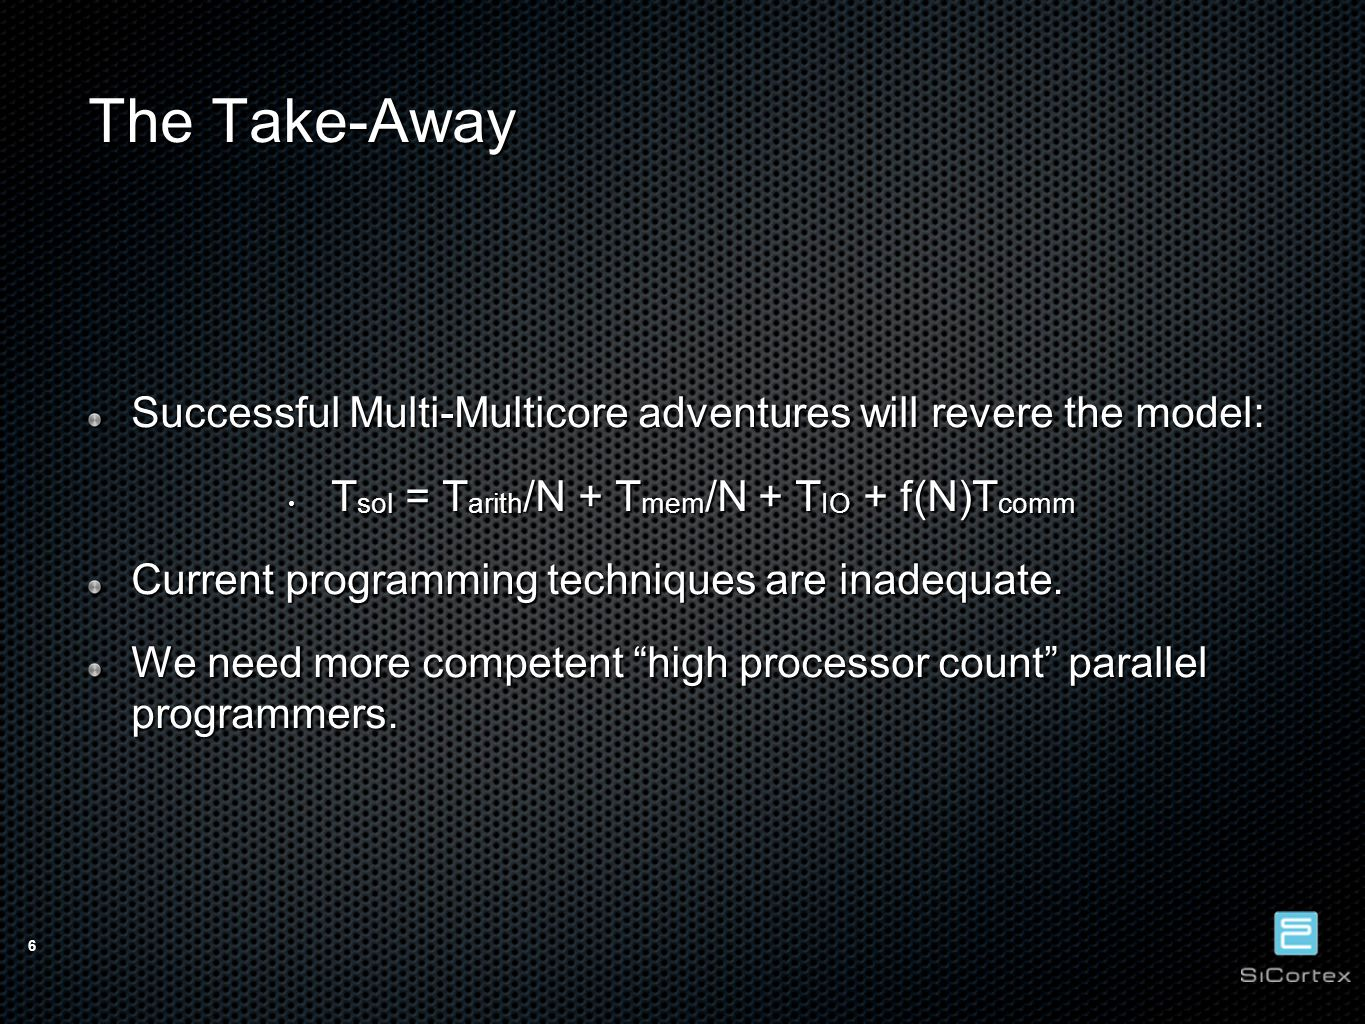 6 The Take-Away Successful Multi-Multicore adventures will revere the model: T sol = T arith /N + T mem /N + T IO + f(N)T comm T sol = T arith /N + T mem /N + T IO + f(N)T comm Current programming techniques are inadequate.